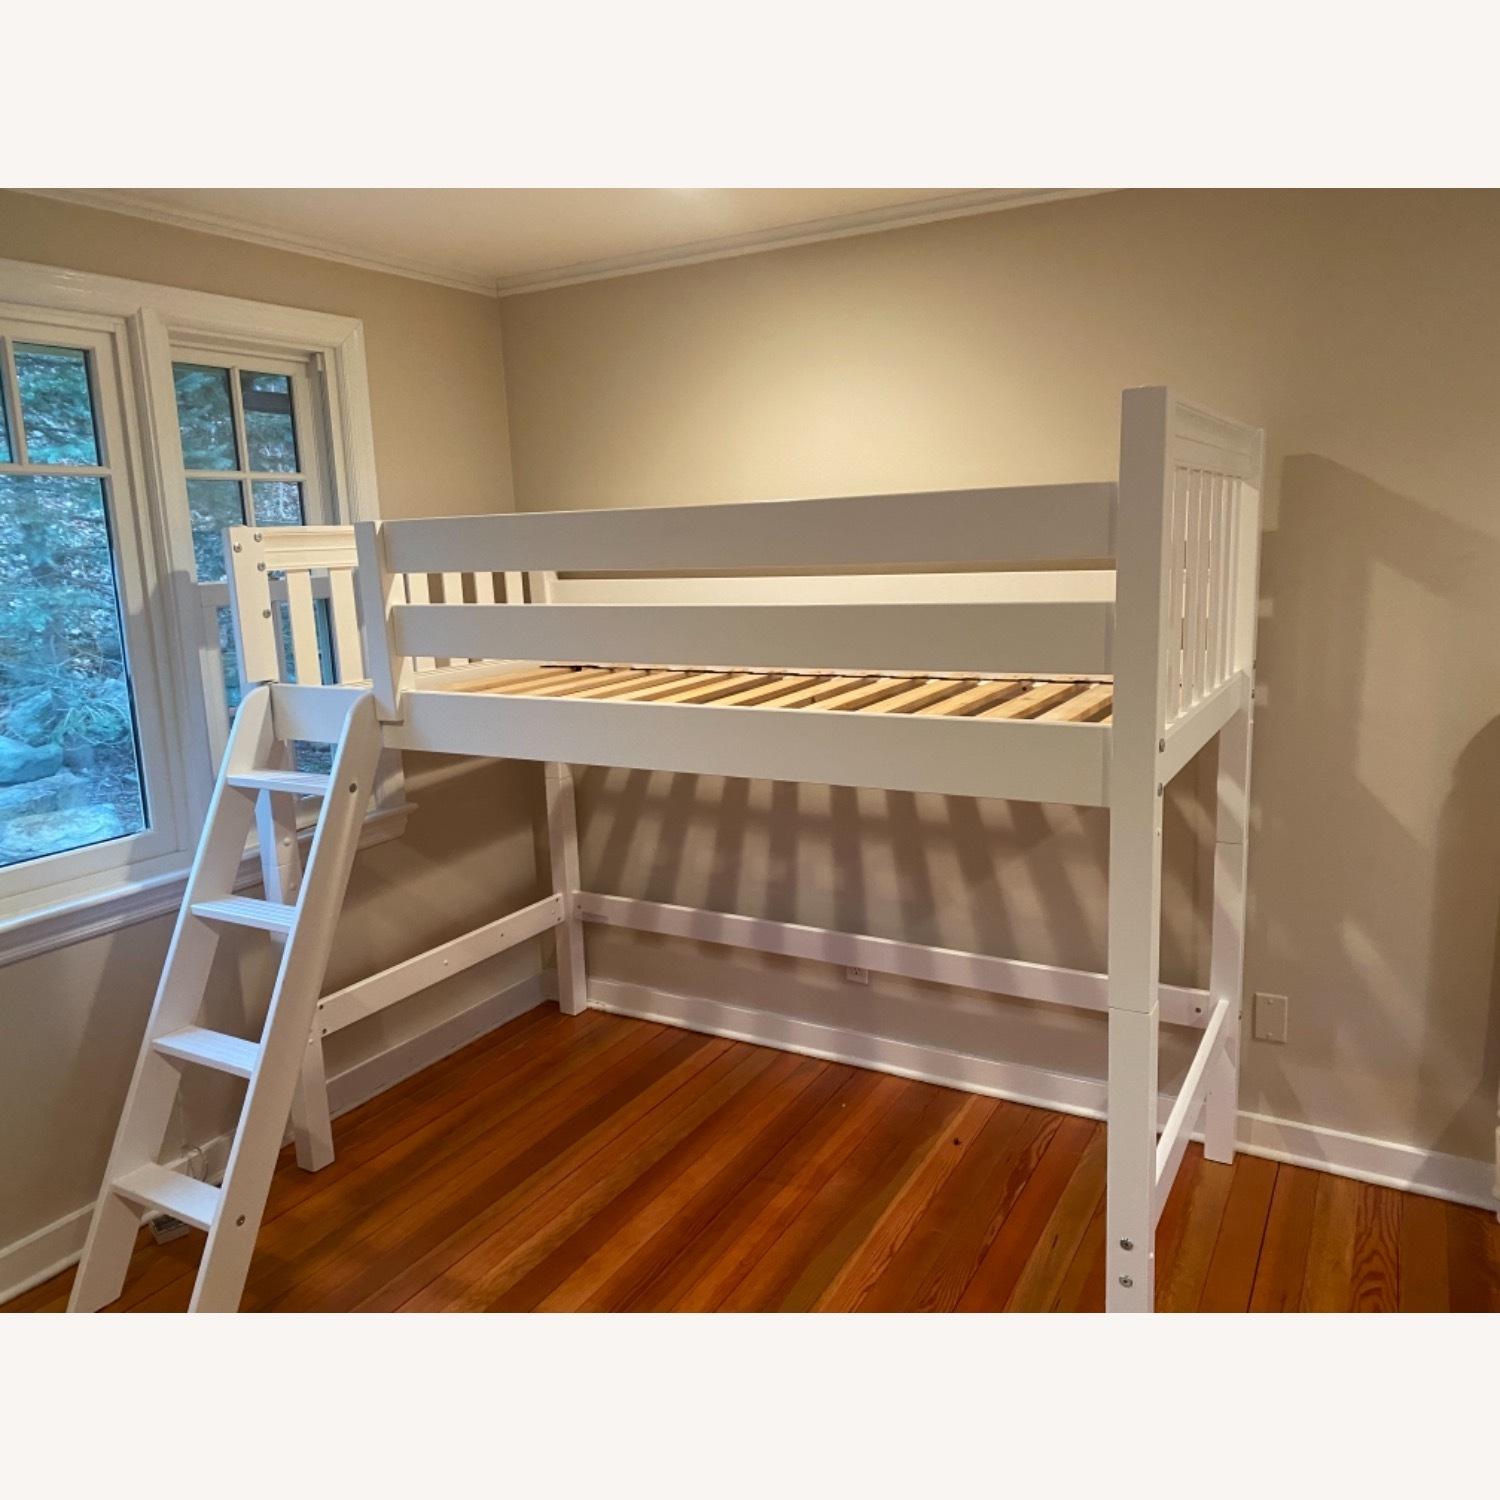 New White Loft Bed - Twin - image-5